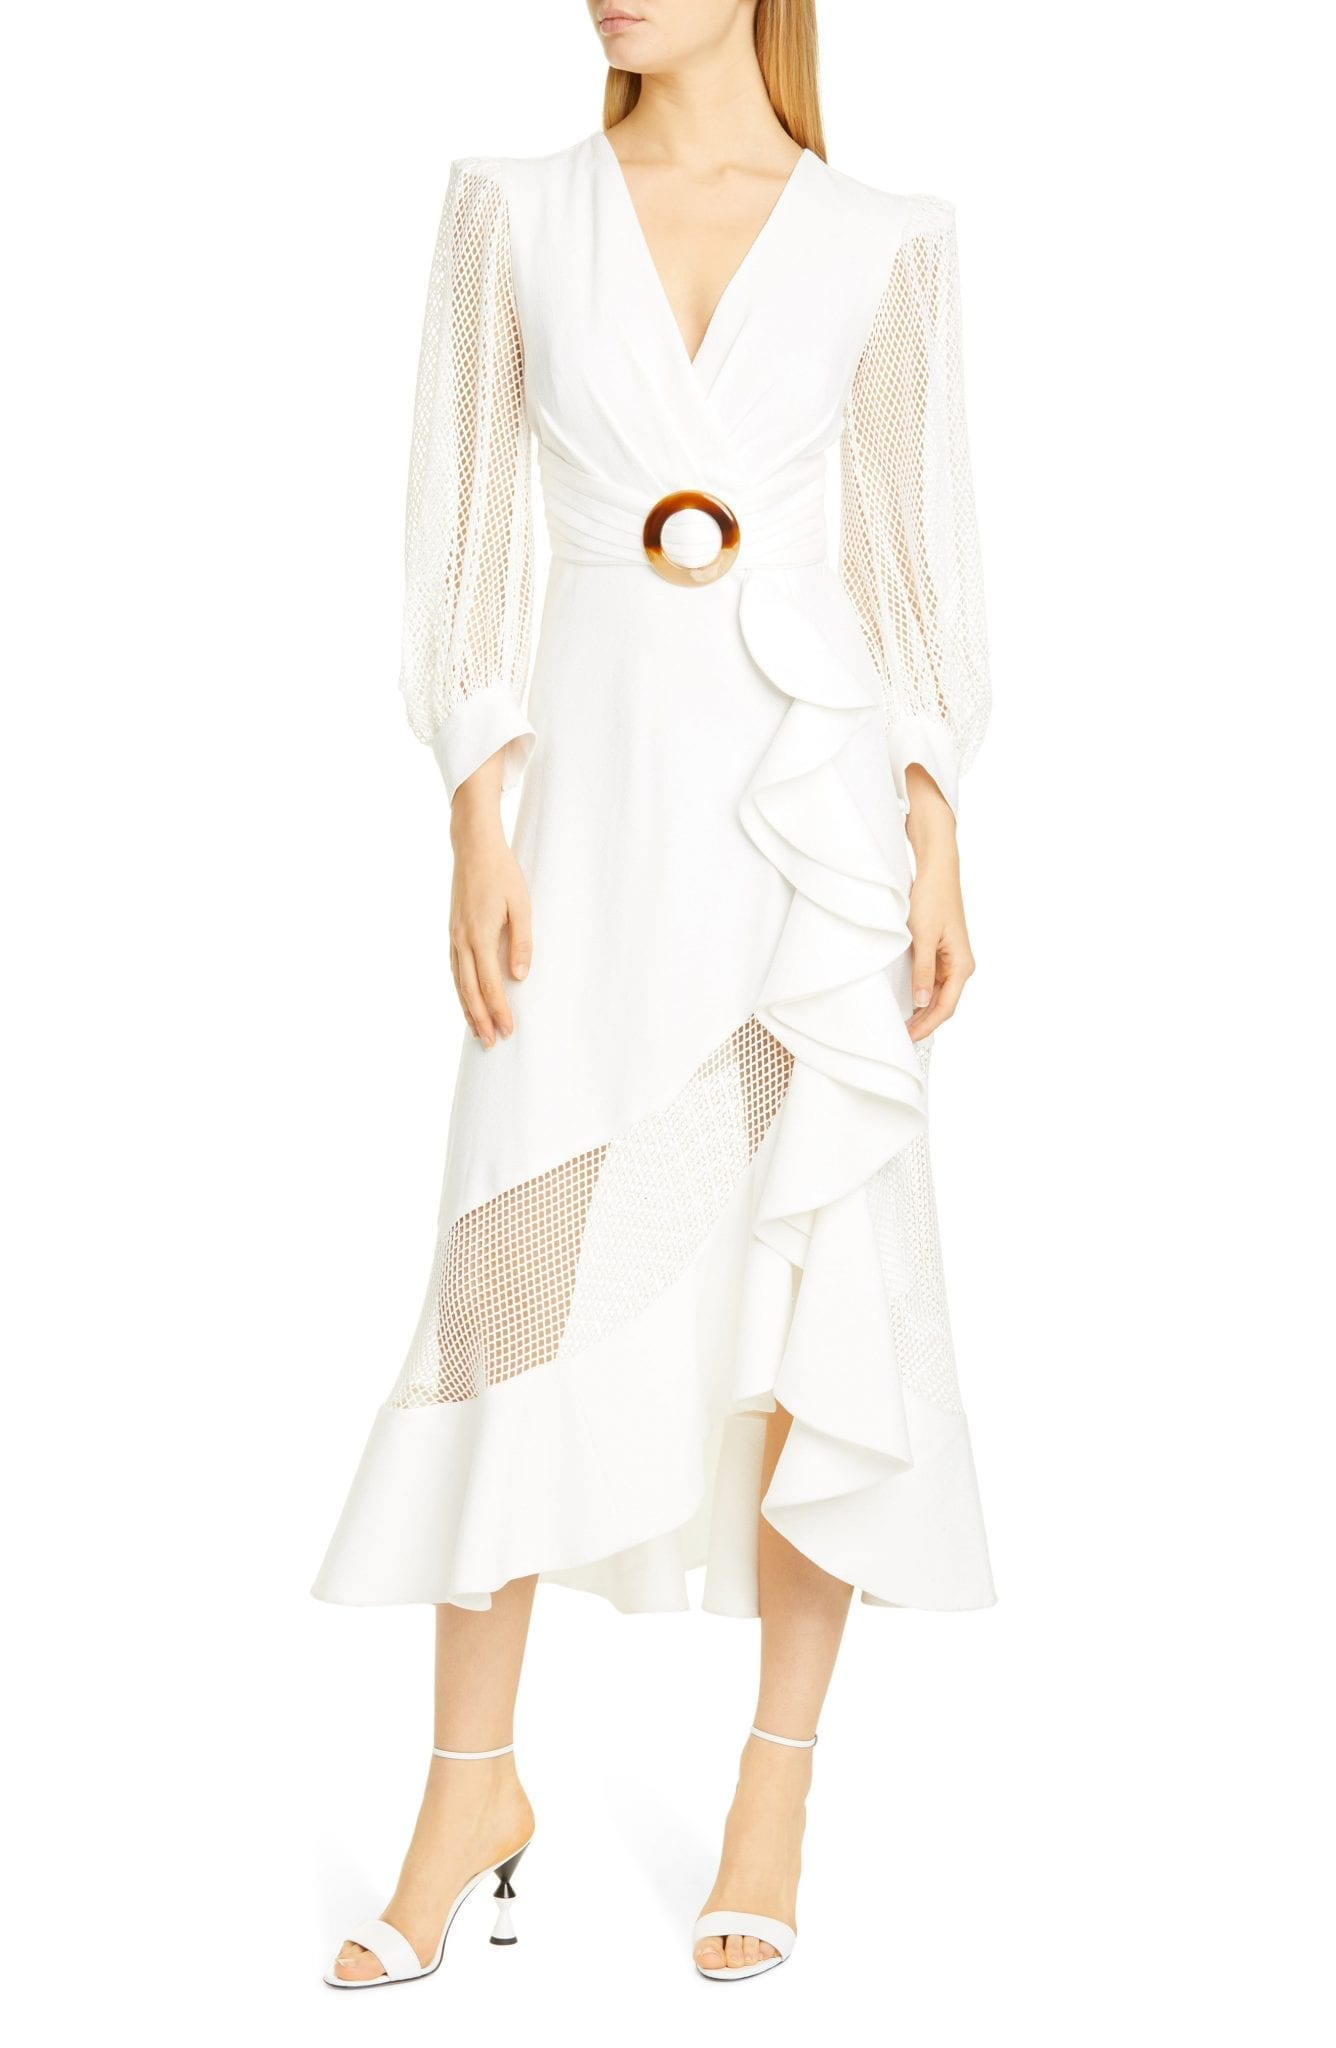 PATBO PATRICIA BONALDI PatBO Mesh Trim Belted Midi Dress